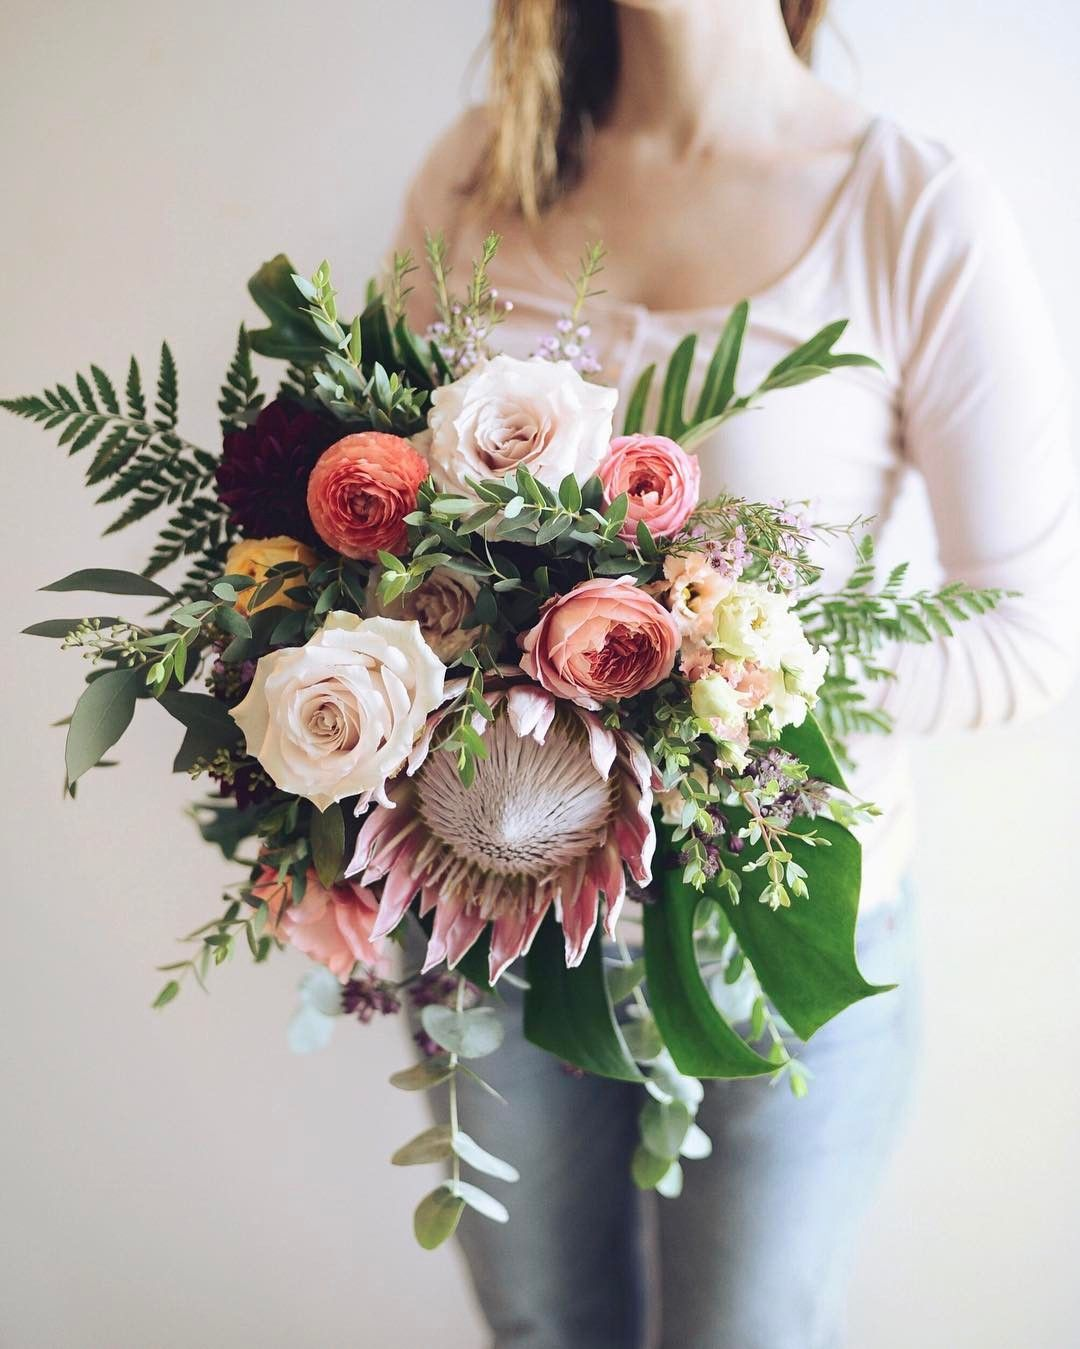 King Protea Bridal Bouquet By Threads Blooms Wedding Bouquets Bride Beautiful Bridal Bouquet Wedding Flower Inspiration